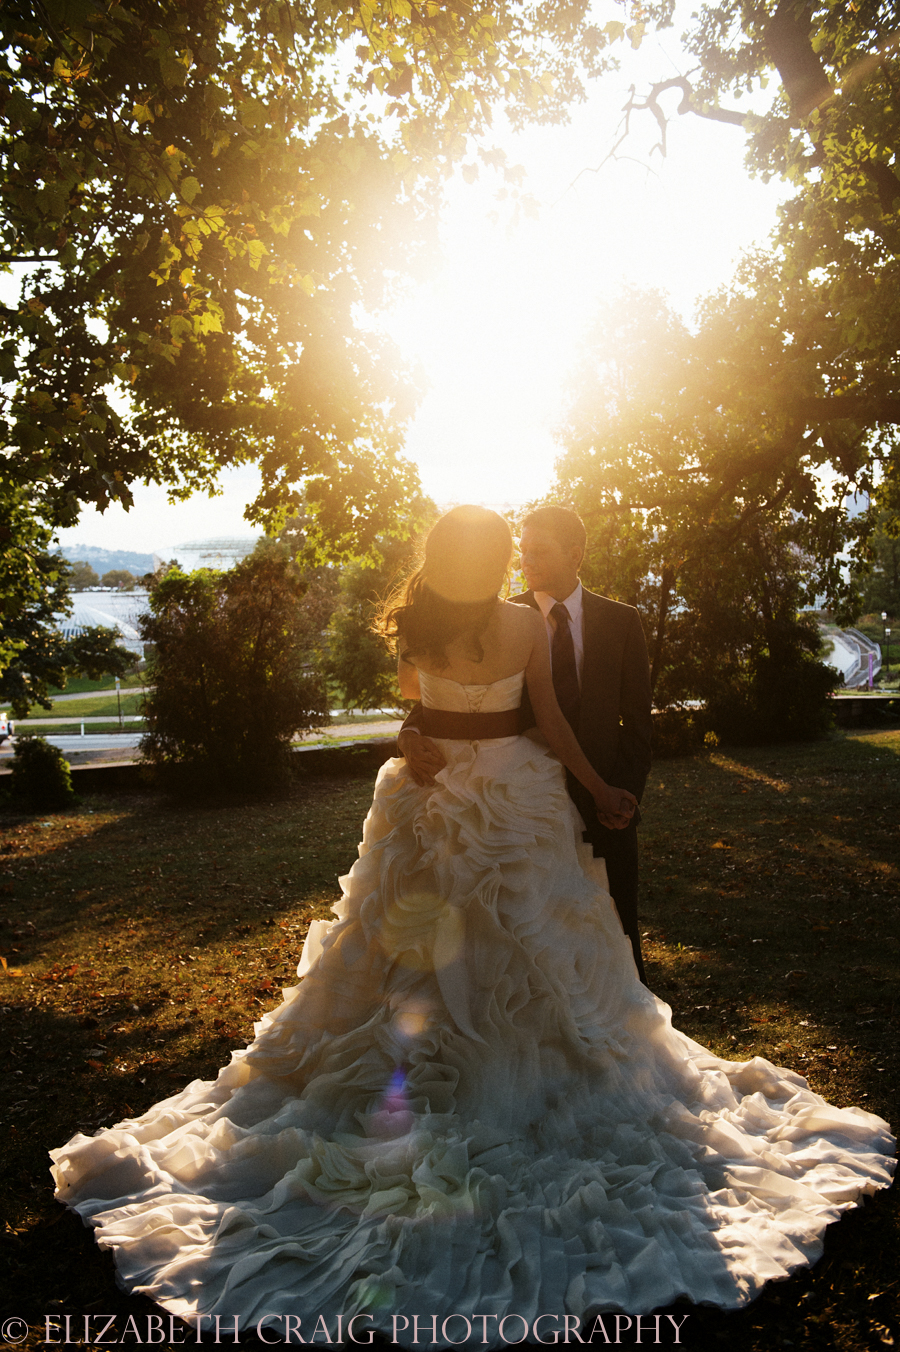 Romantic Wedding Photos | Elizabeth Craig Photography-017